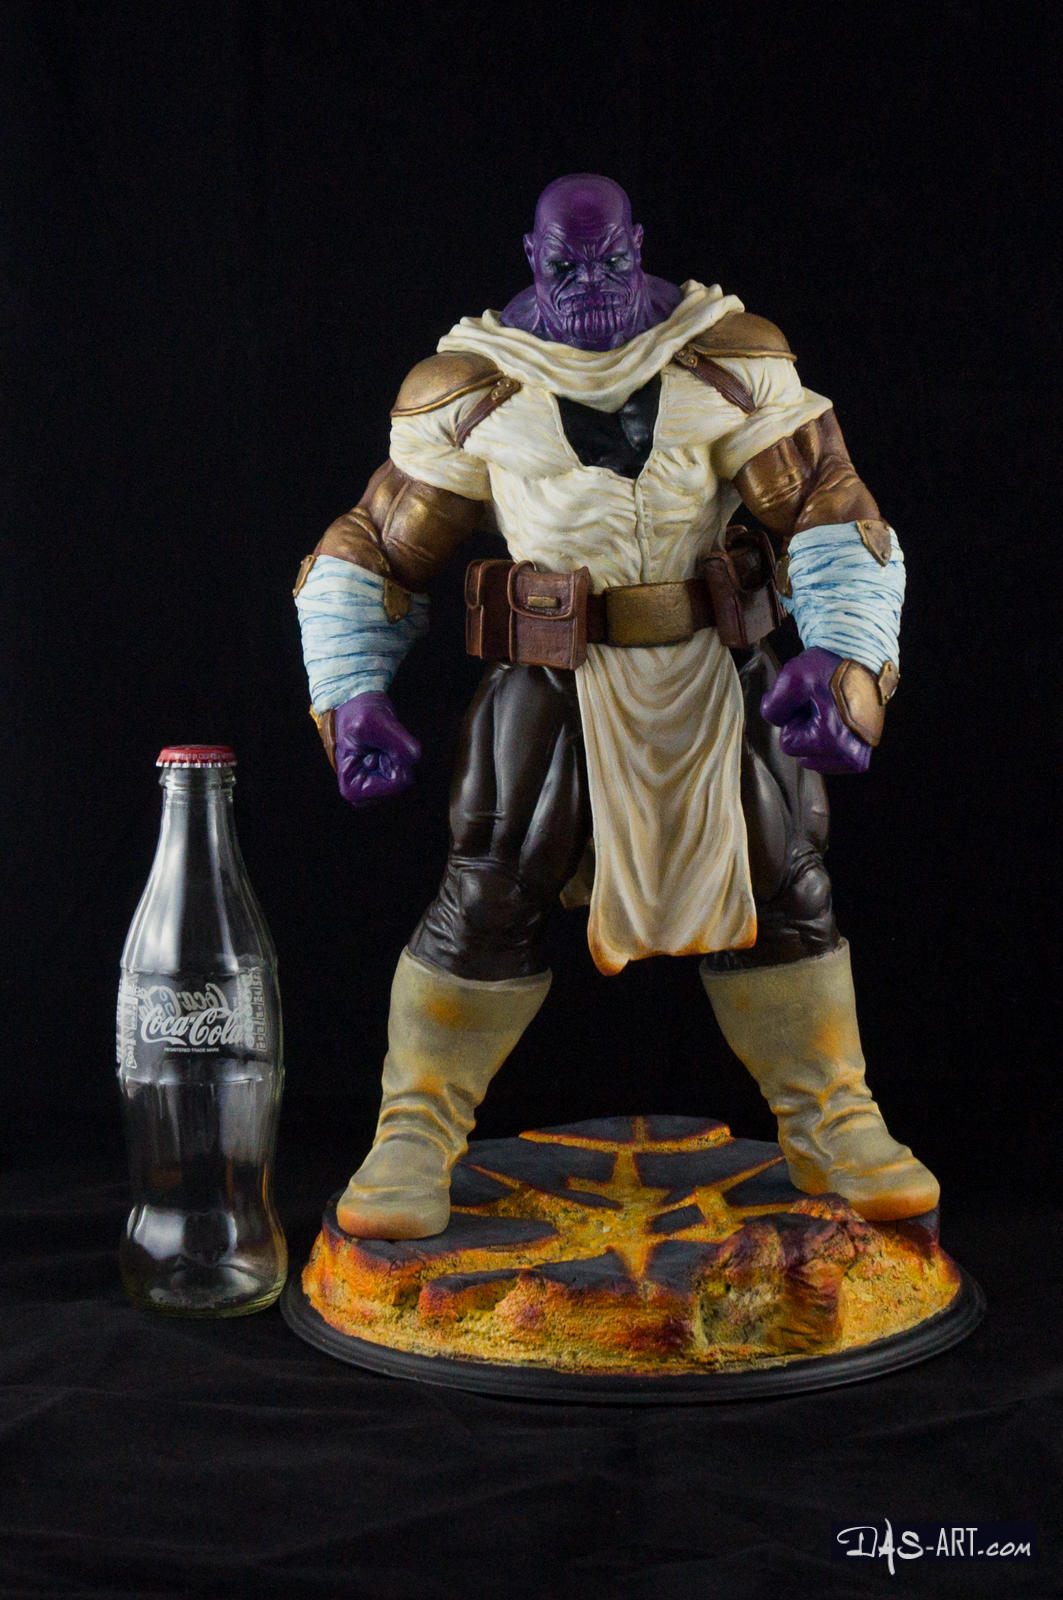 [GK painting #19] Thanos statue - 019 by DasArt